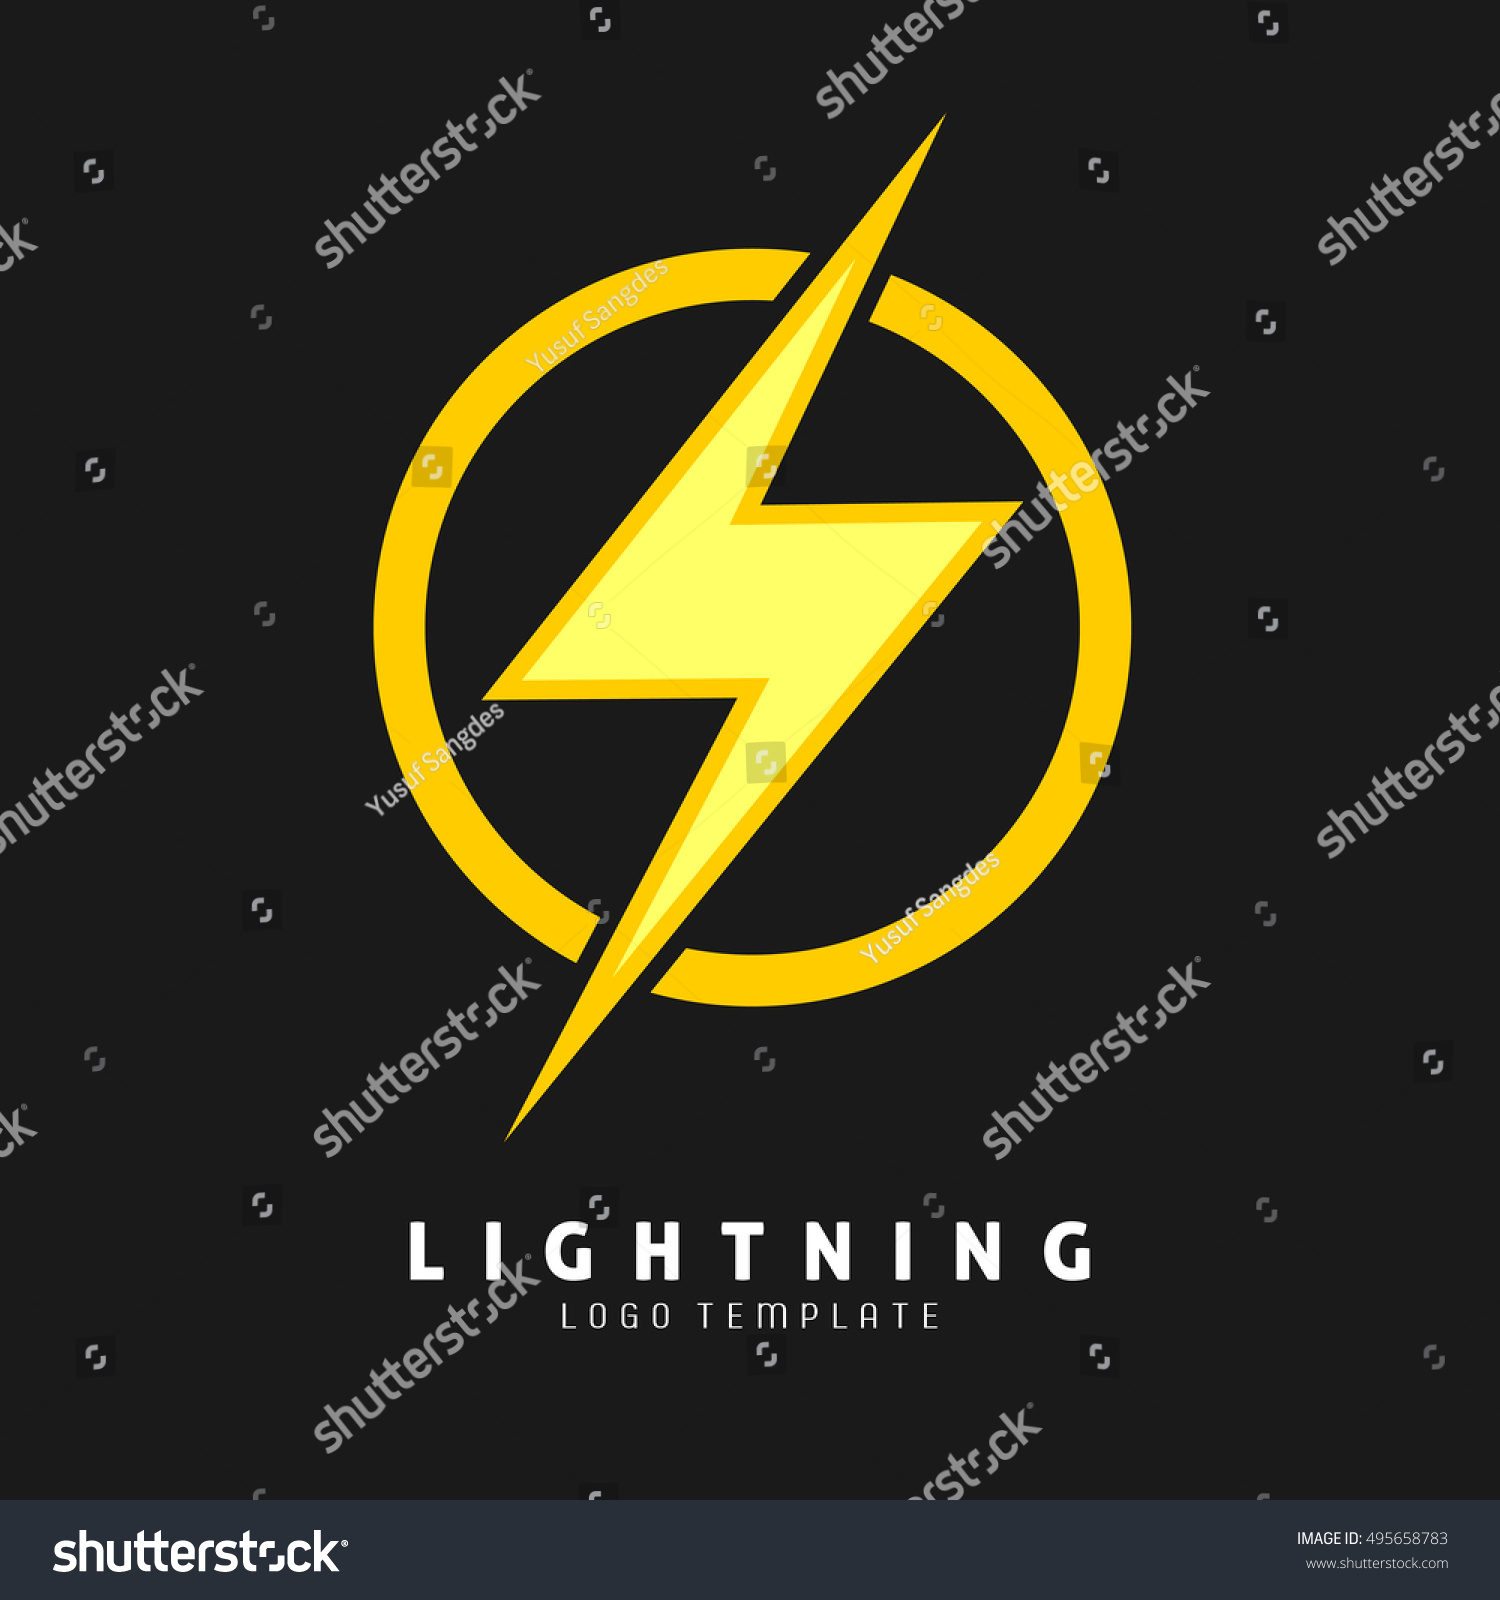 Yellow Lightning Symbol Logo Template For Electric Company And Superhero Vector Eps